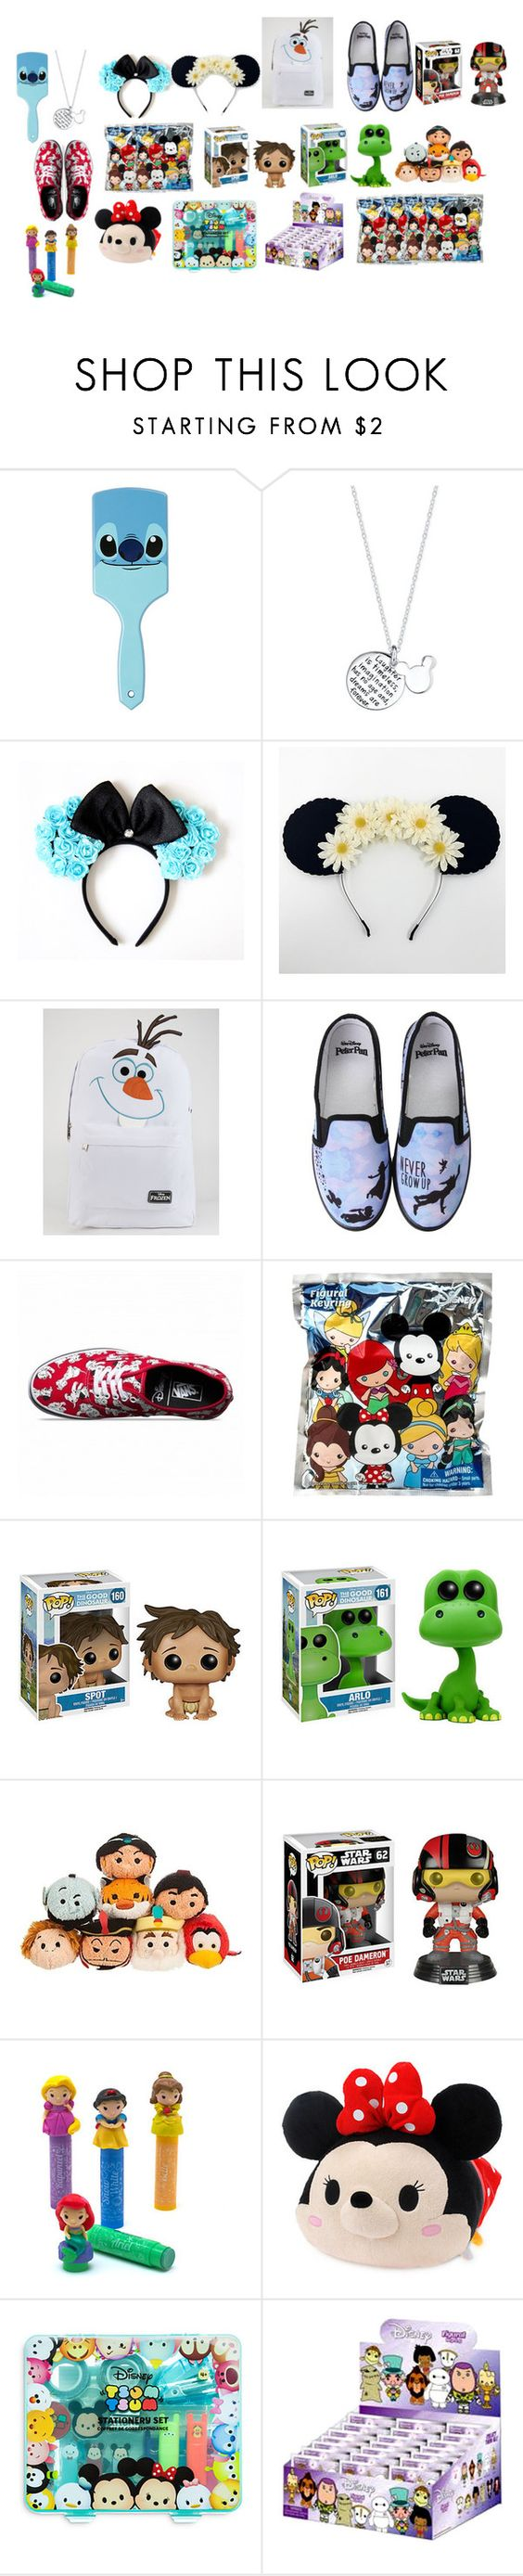 """Disney haul"" by smile-74 ❤ liked on Polyvore featuring Disney"